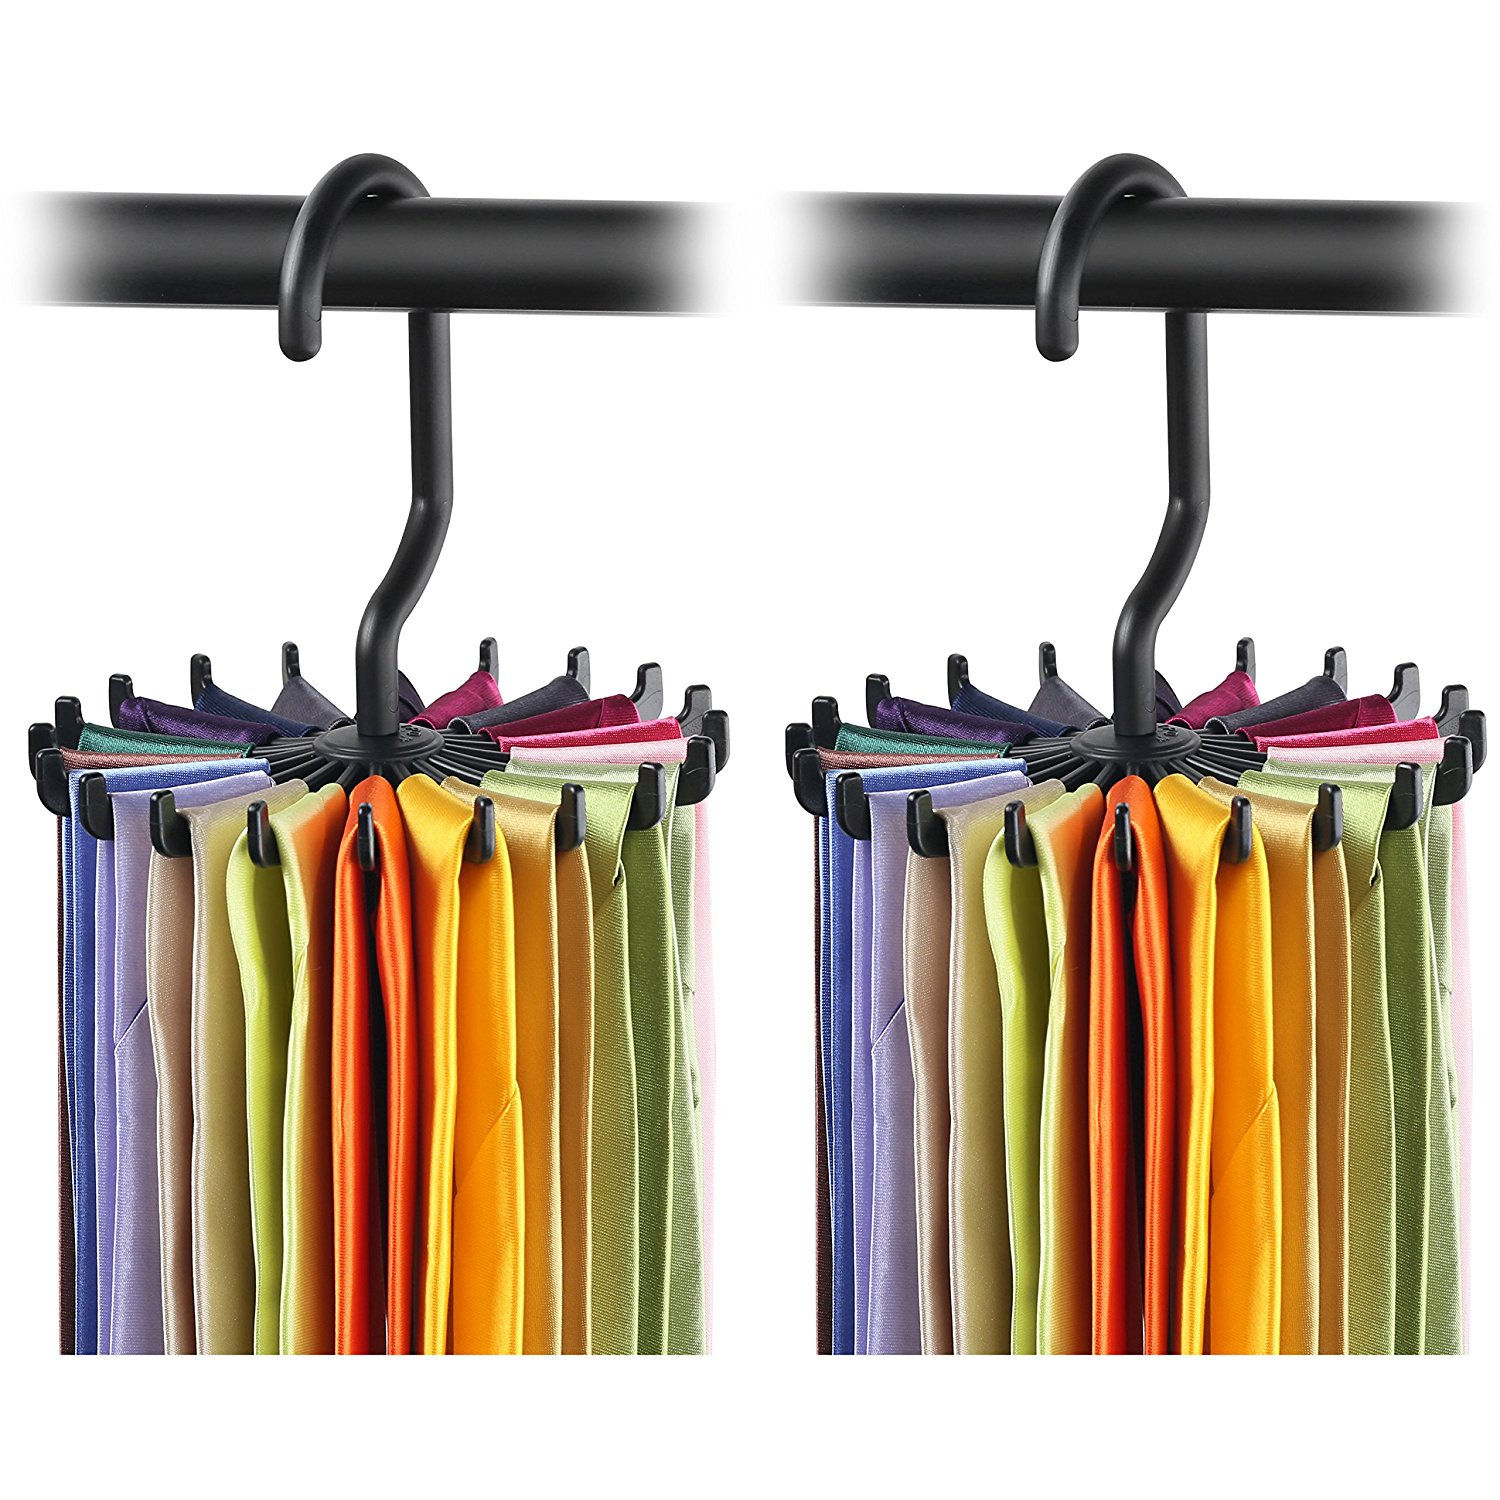 IPOW Upgraded Twirling Tie Rack Adjustable Belt Hanger Scarf Holder Neck  Ties Hook For Closet Organizers